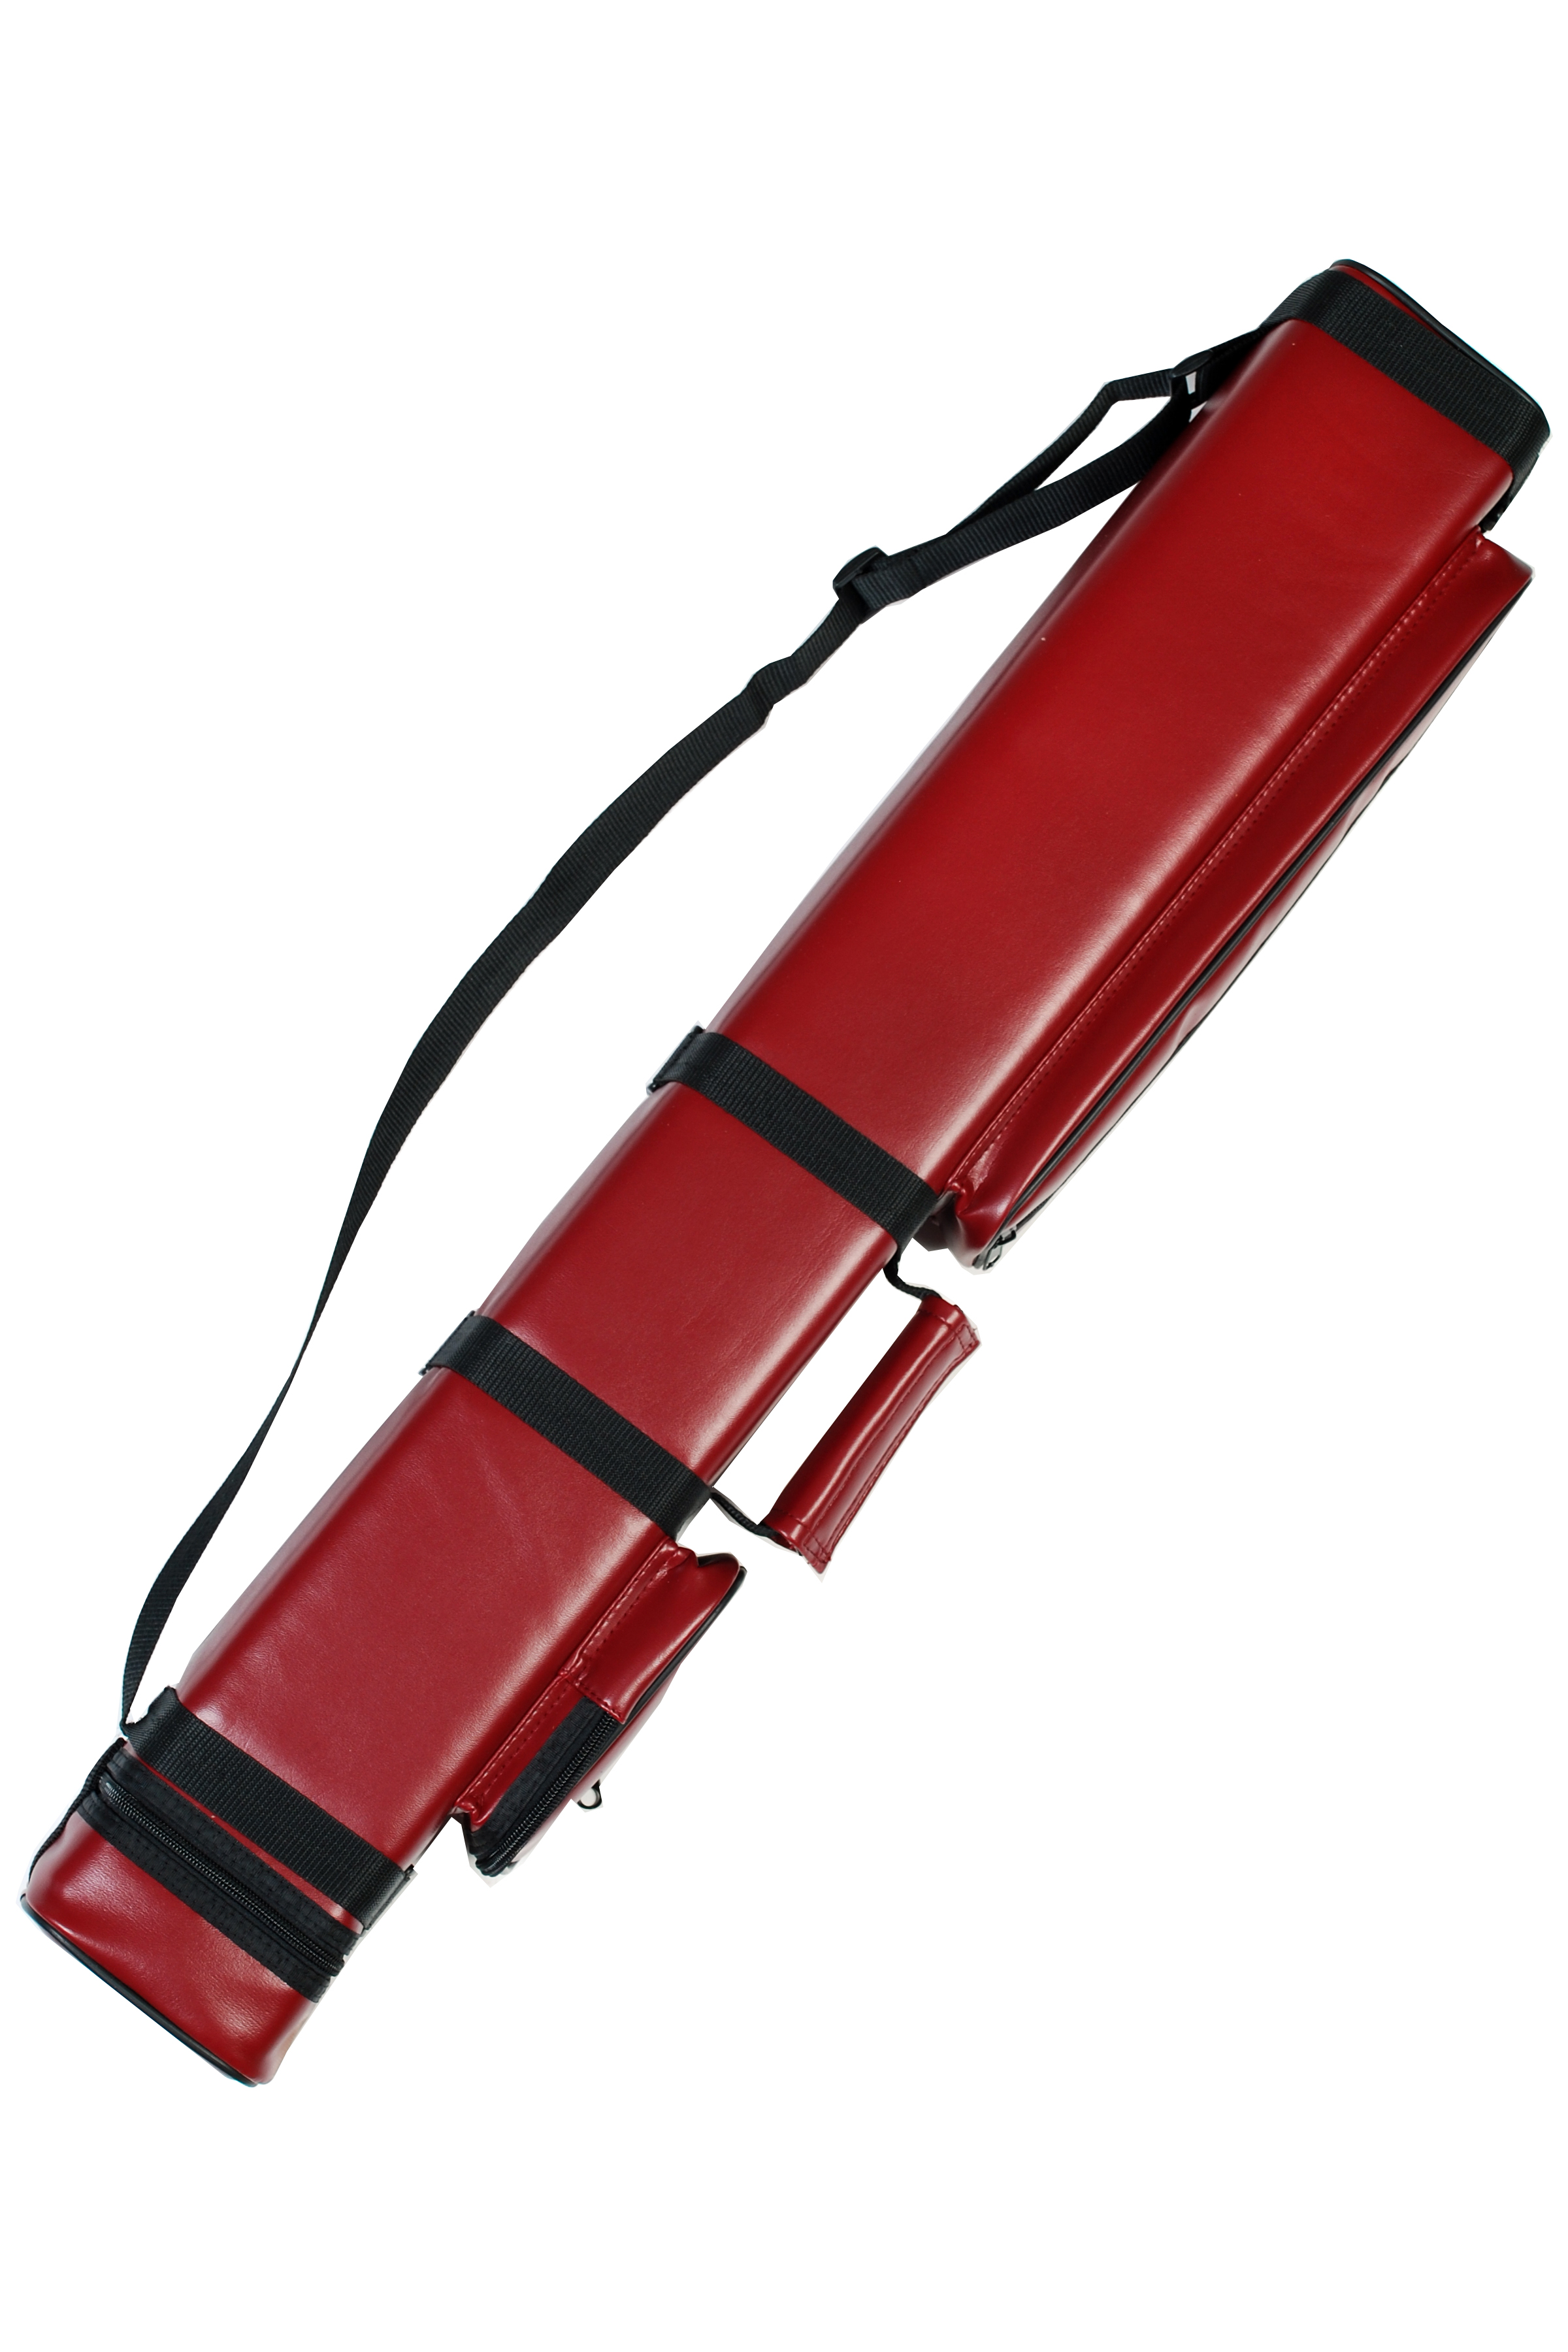 3X6 Hard Pool Cue Billiards Stick Carrying Case Dark Red 3 X 6